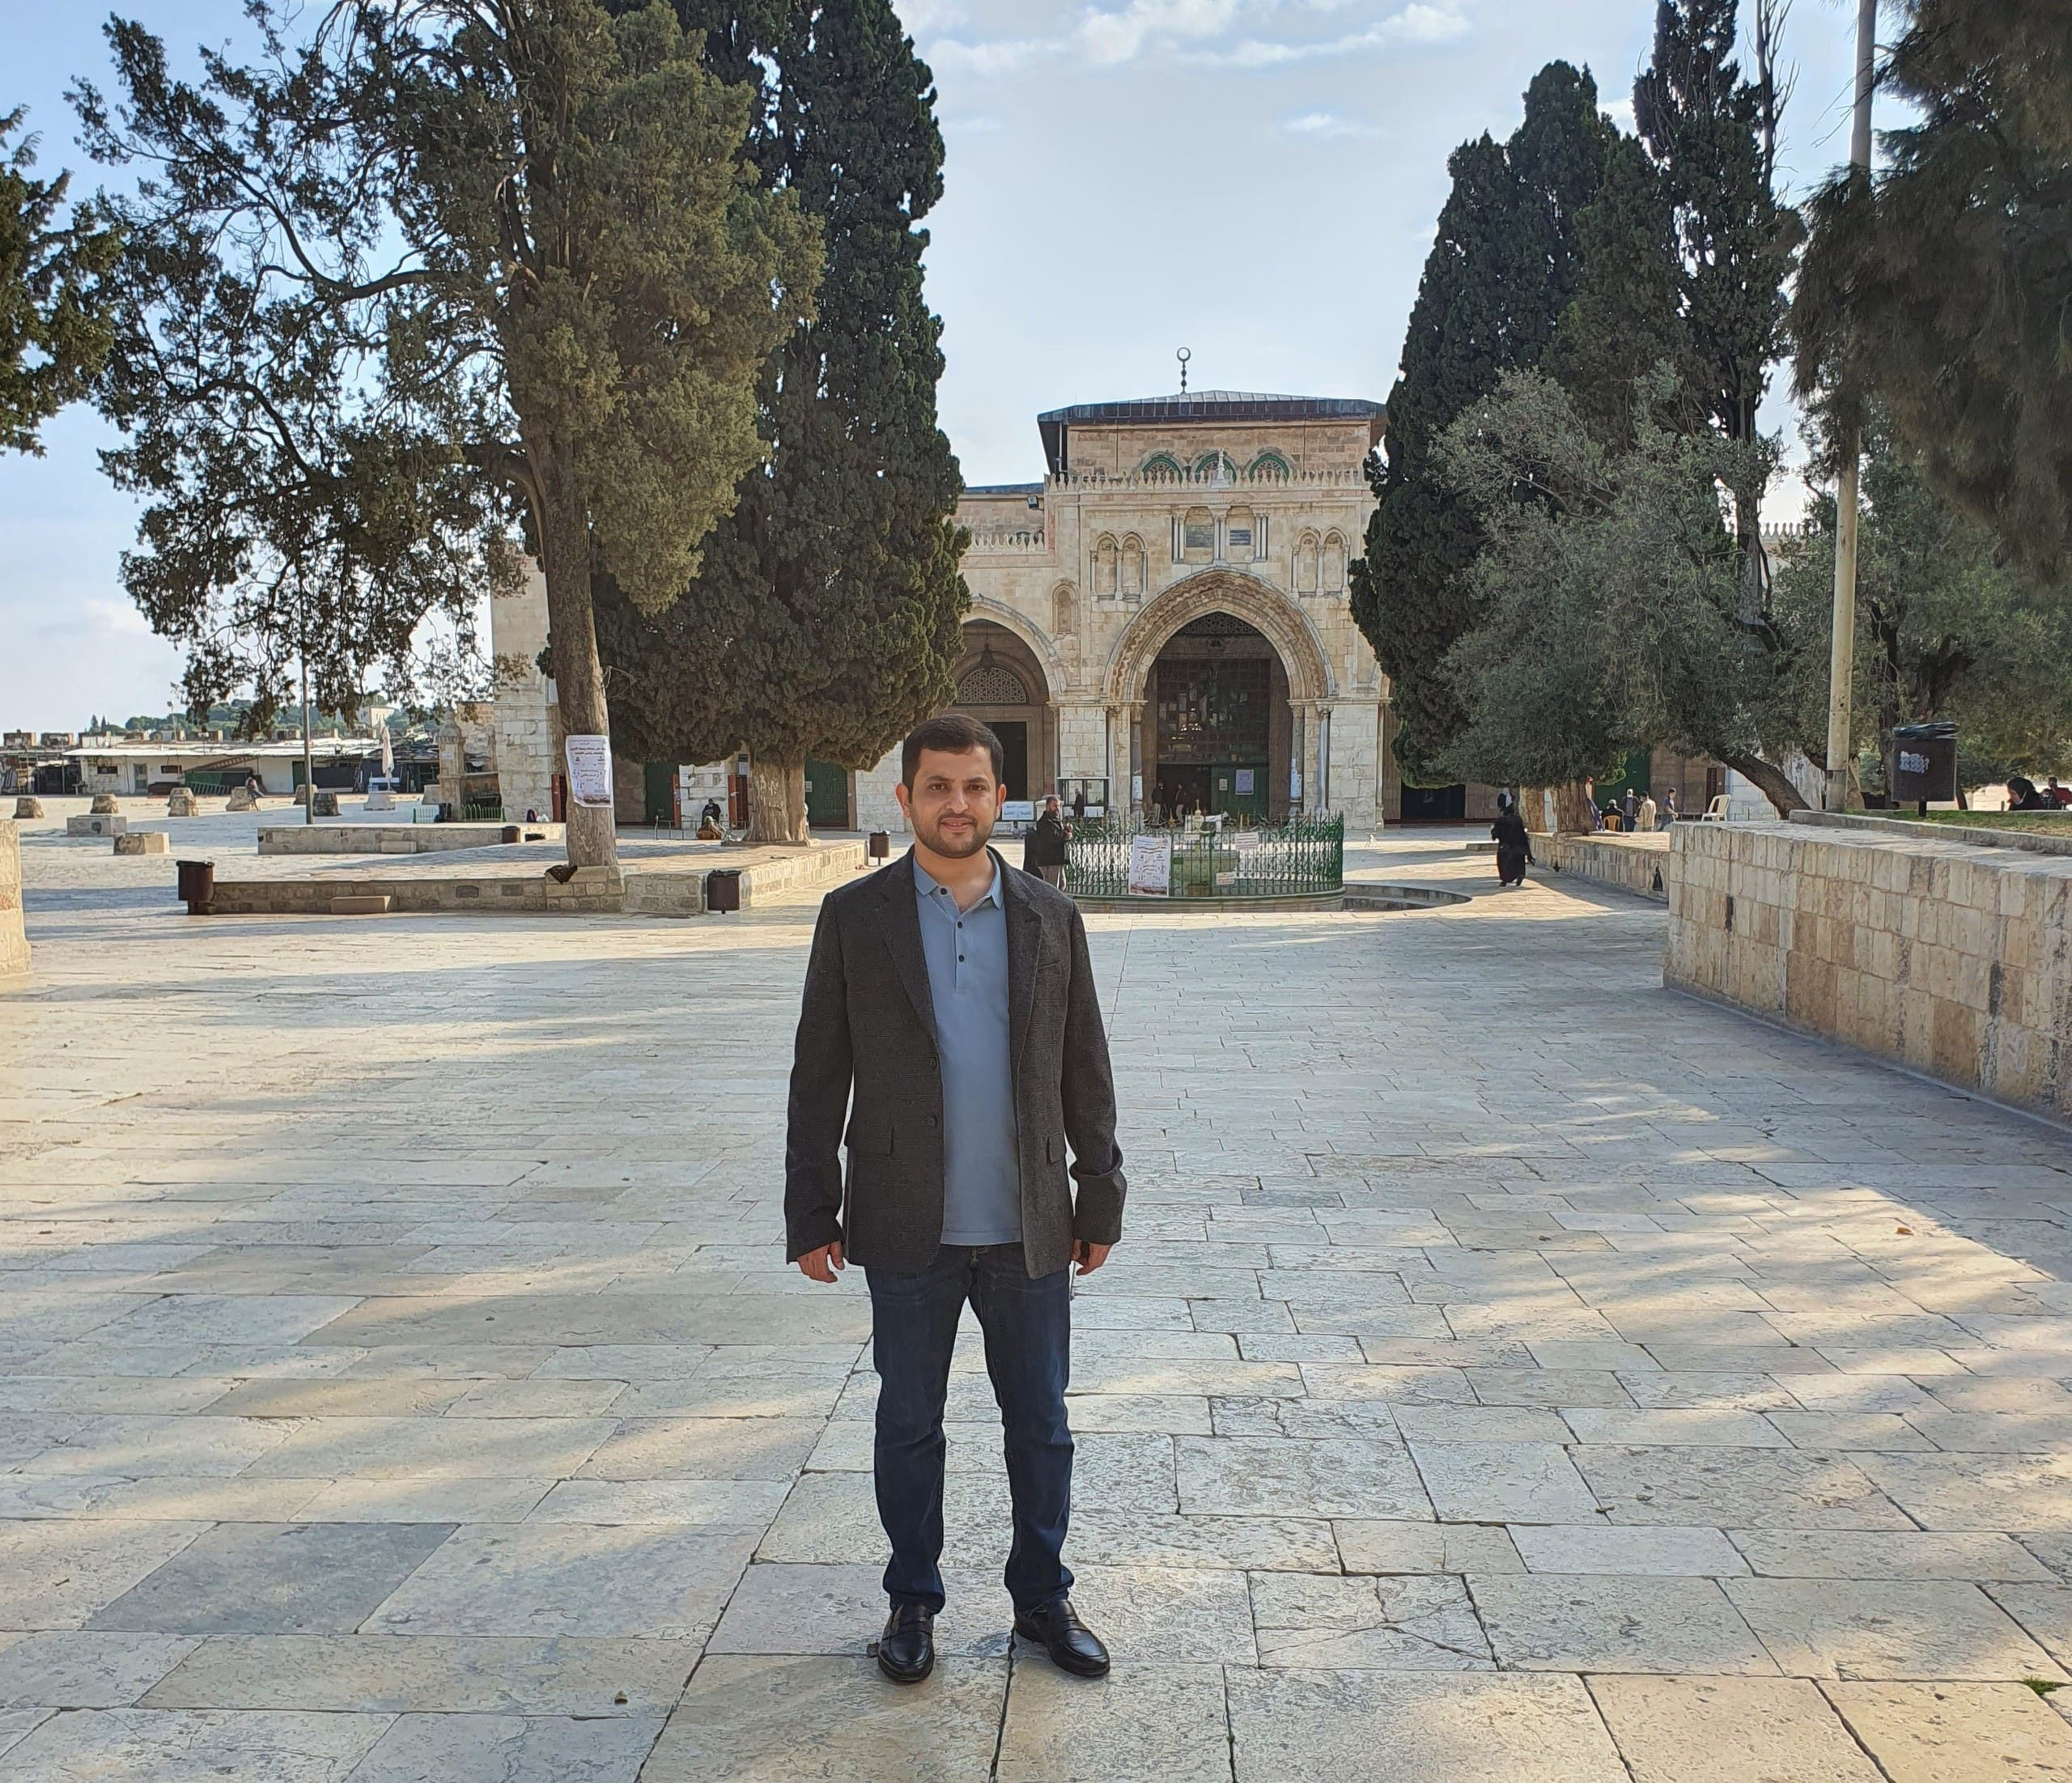 Ahmad Harib in the Al Aqsa compound in East Jerusalem. (Supplied)